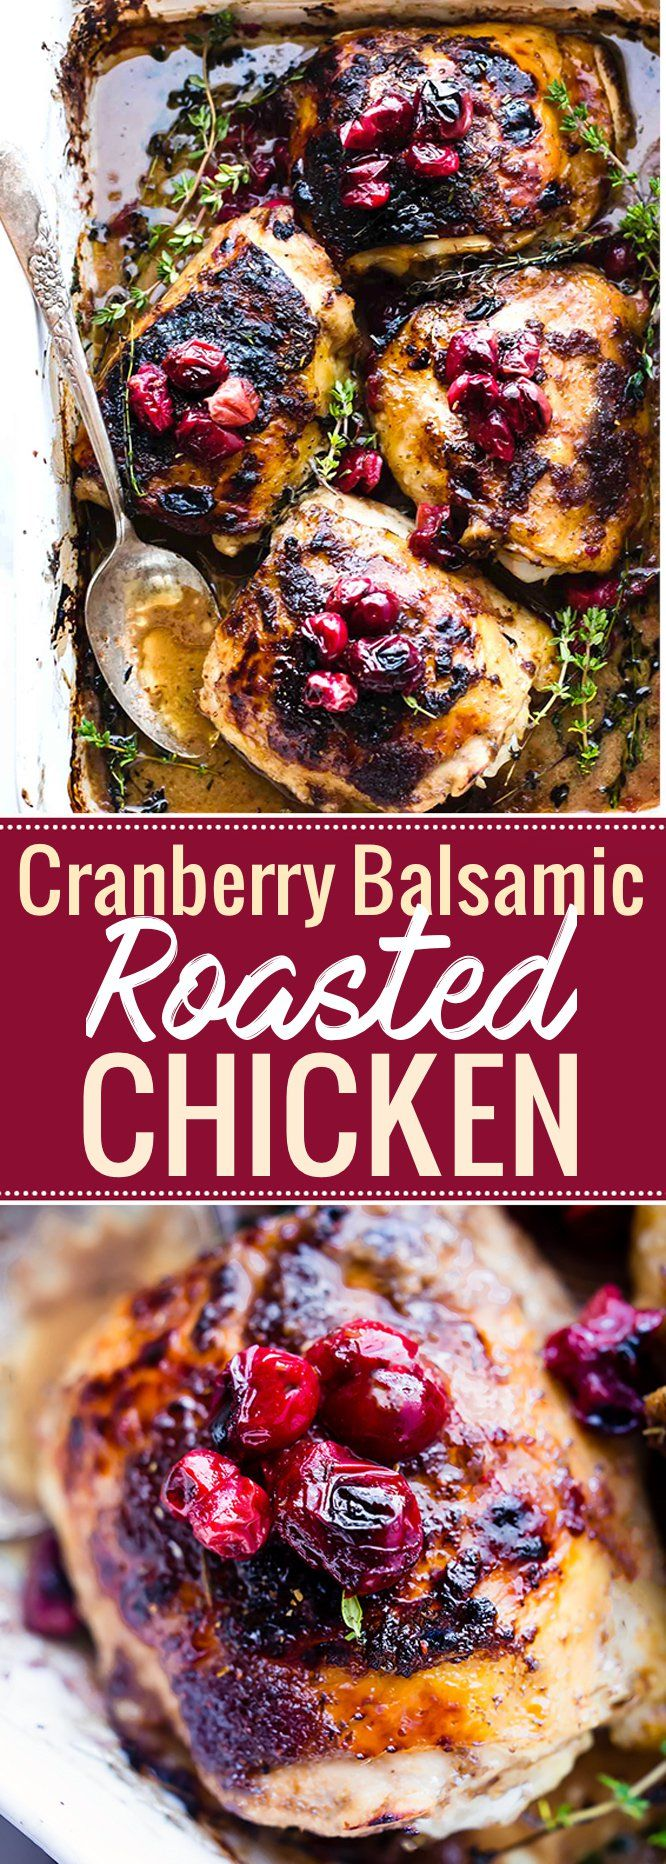 Balsamic Roasted Chicken with Cranberries! How absolutely wonderful!! And its  prepared and cooked in just ONE PAN!  Easy enough for weeknight yet definitely wonderful for entertaining too!! A sweet tangy marinade makes this roasted chicken extra juicy and extra crispy!! Love! www.cottercrunch.com @cottercrunch.com